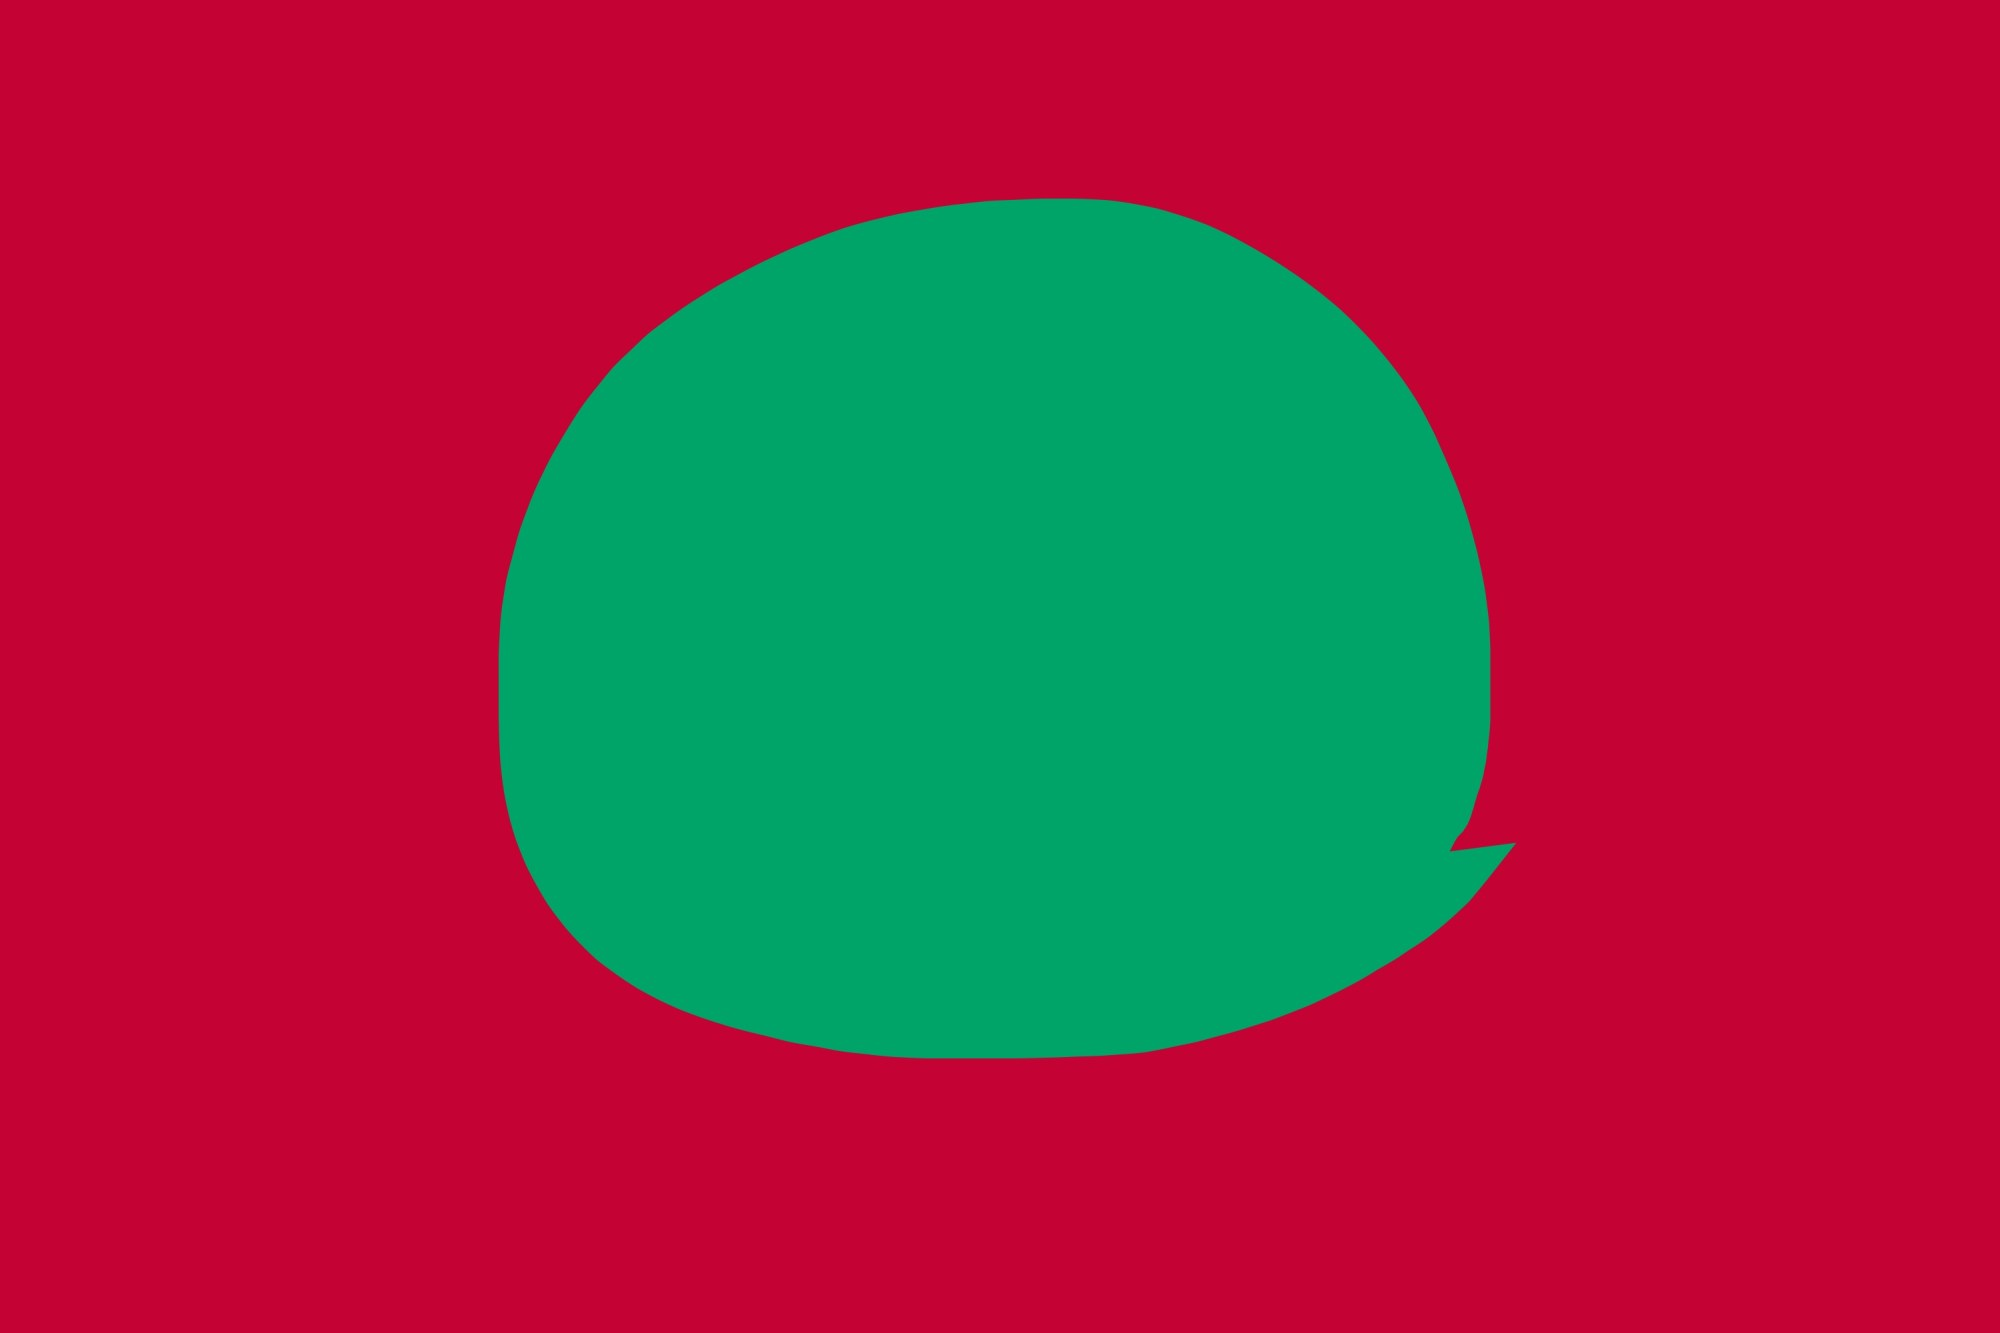 Strong figure to ground: green circle against red background.